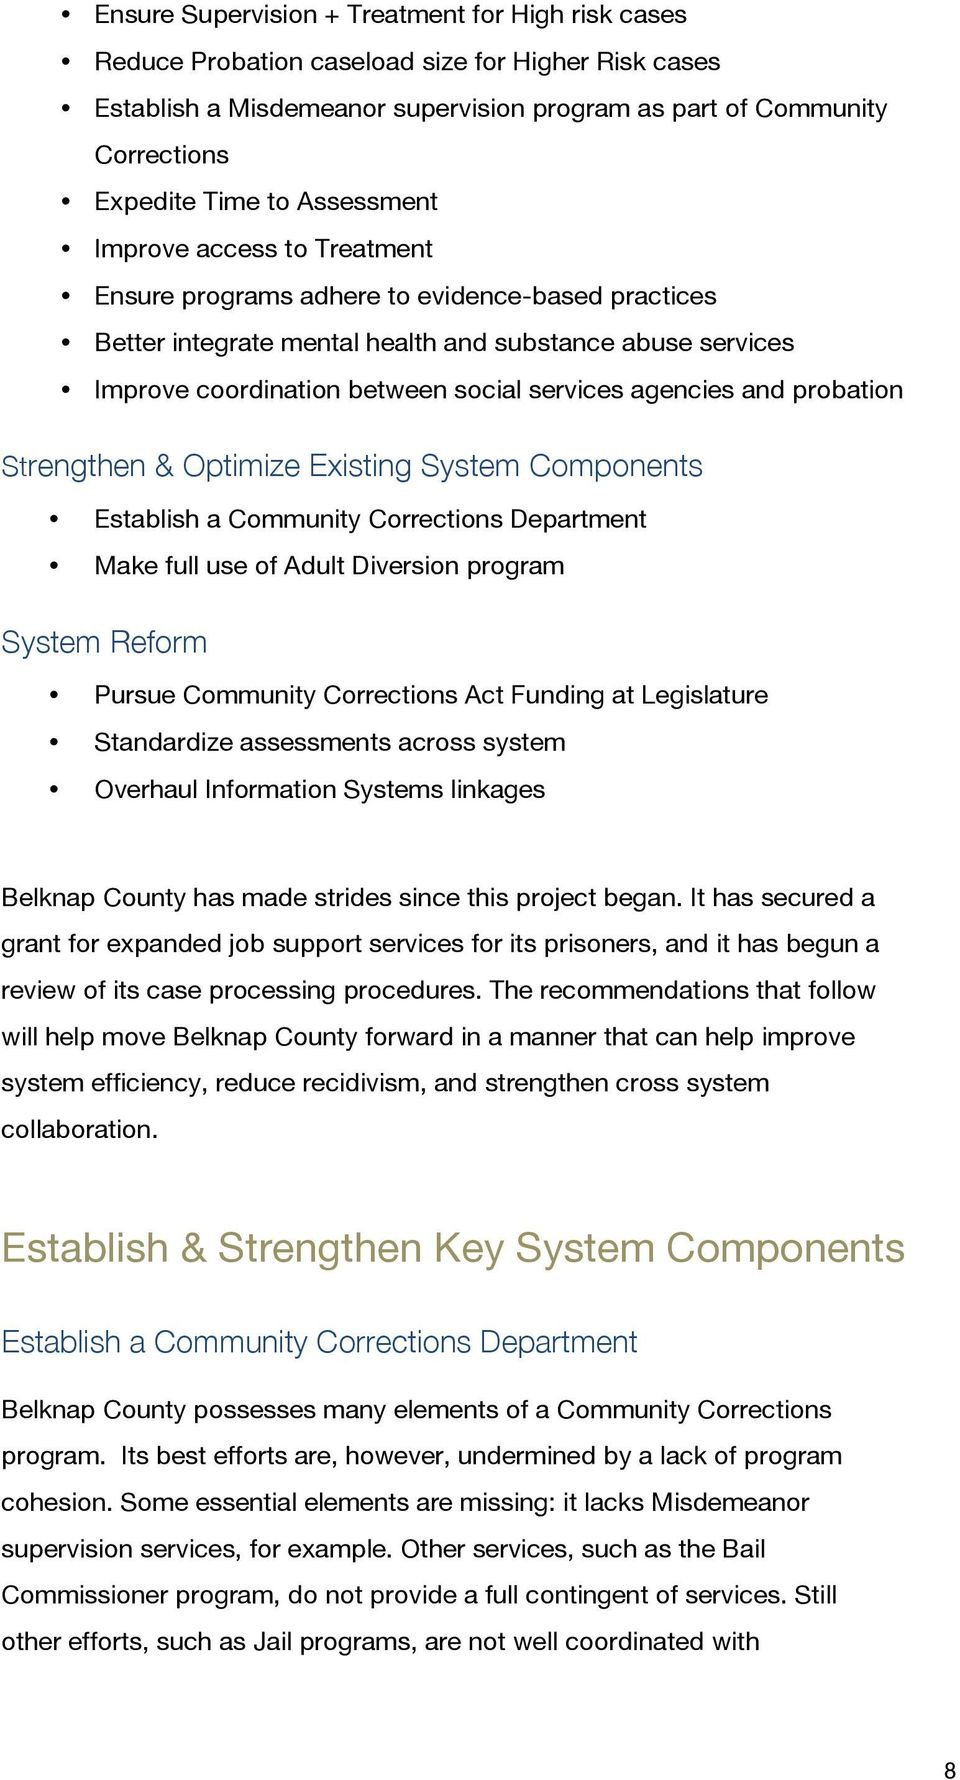 agencies and probation Strengthen & Optimize Existing System Components Establish a Community Corrections Department Make full use of Adult Diversion program System Reform Pursue Community